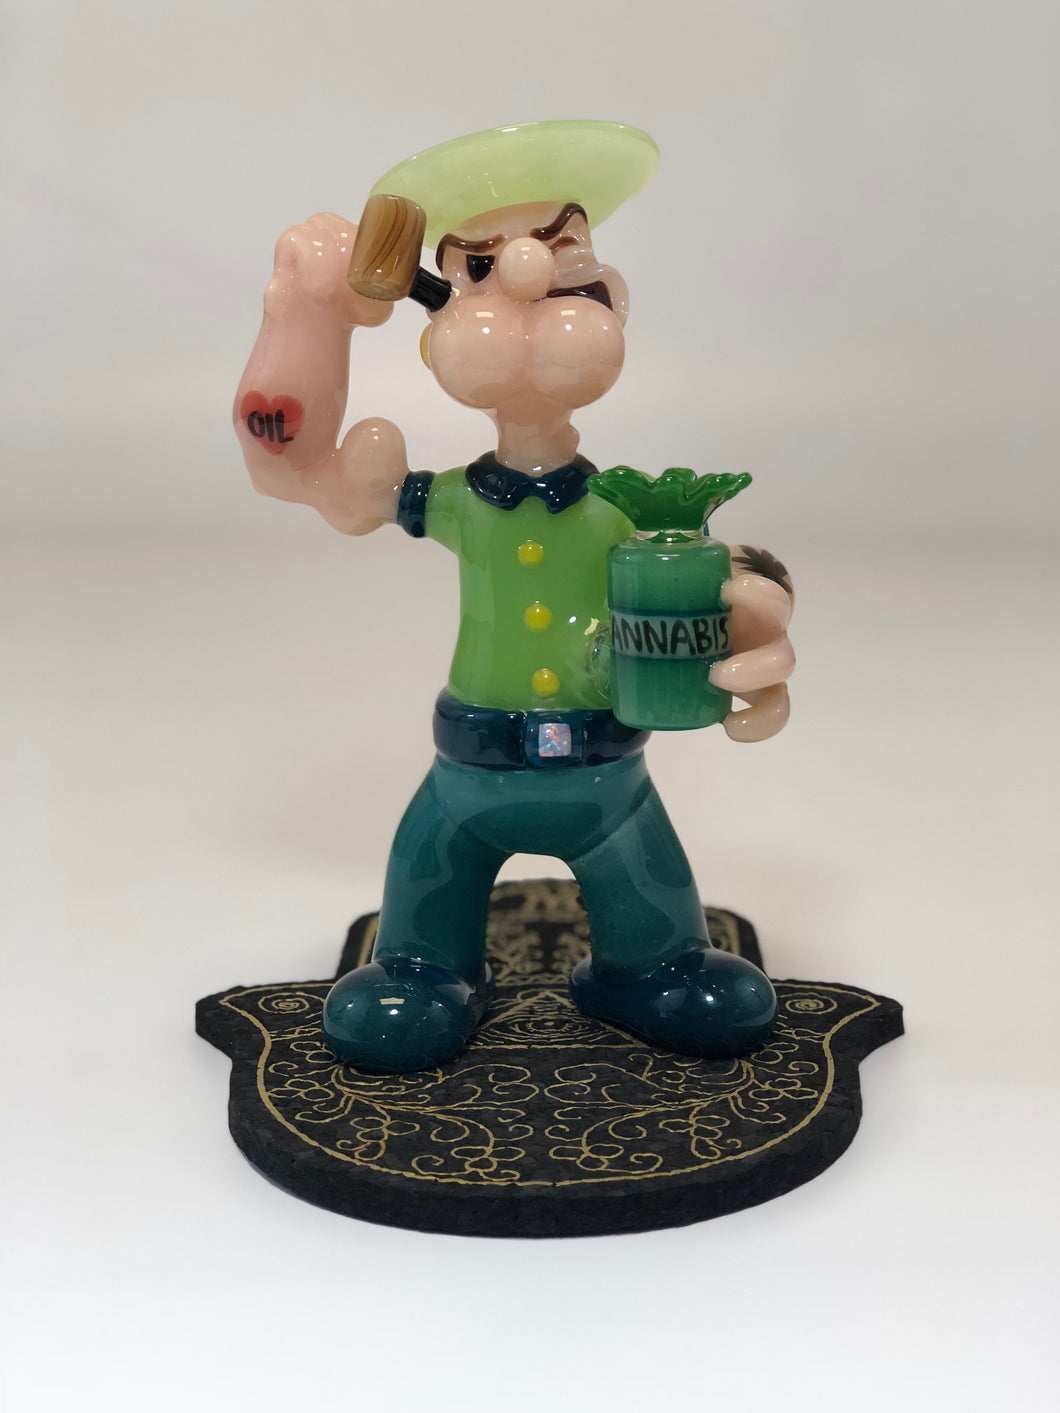 Potpye the sailor man by Jsmart Glass